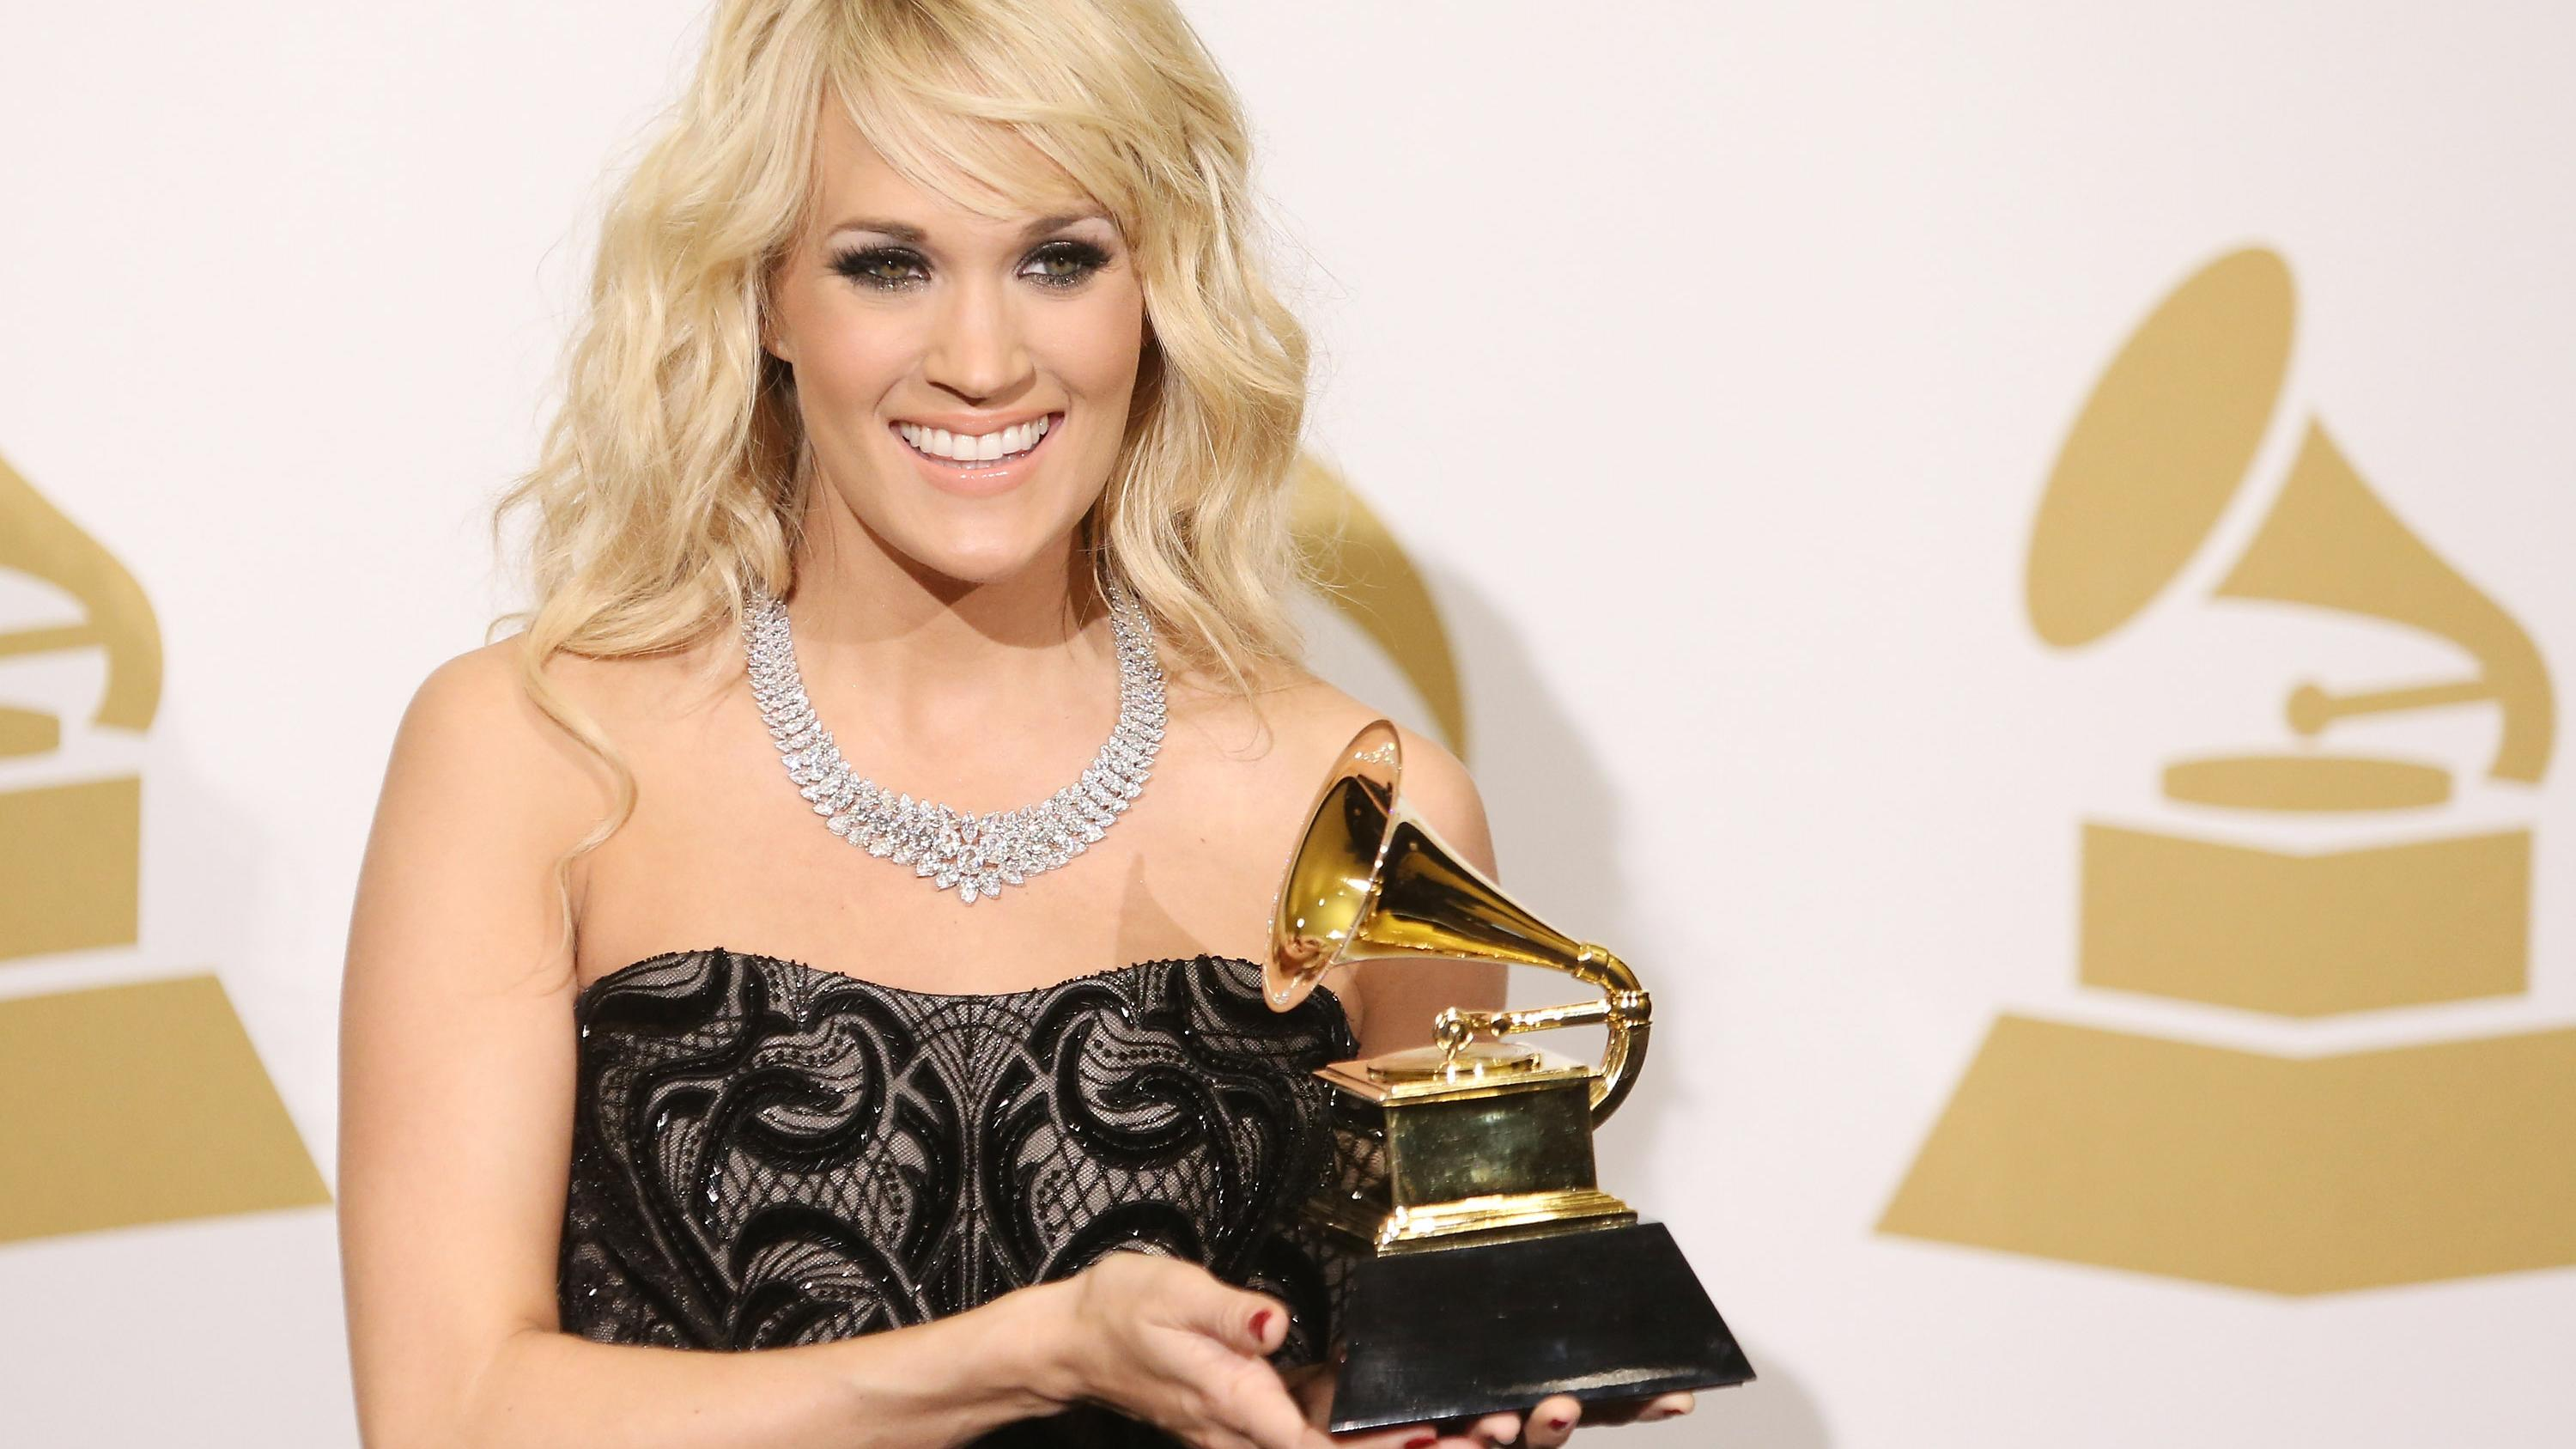 Carrie Underwood attends the Grammy awards on February 10, 2013. (Photo by Michael Tran/FilmMagic)